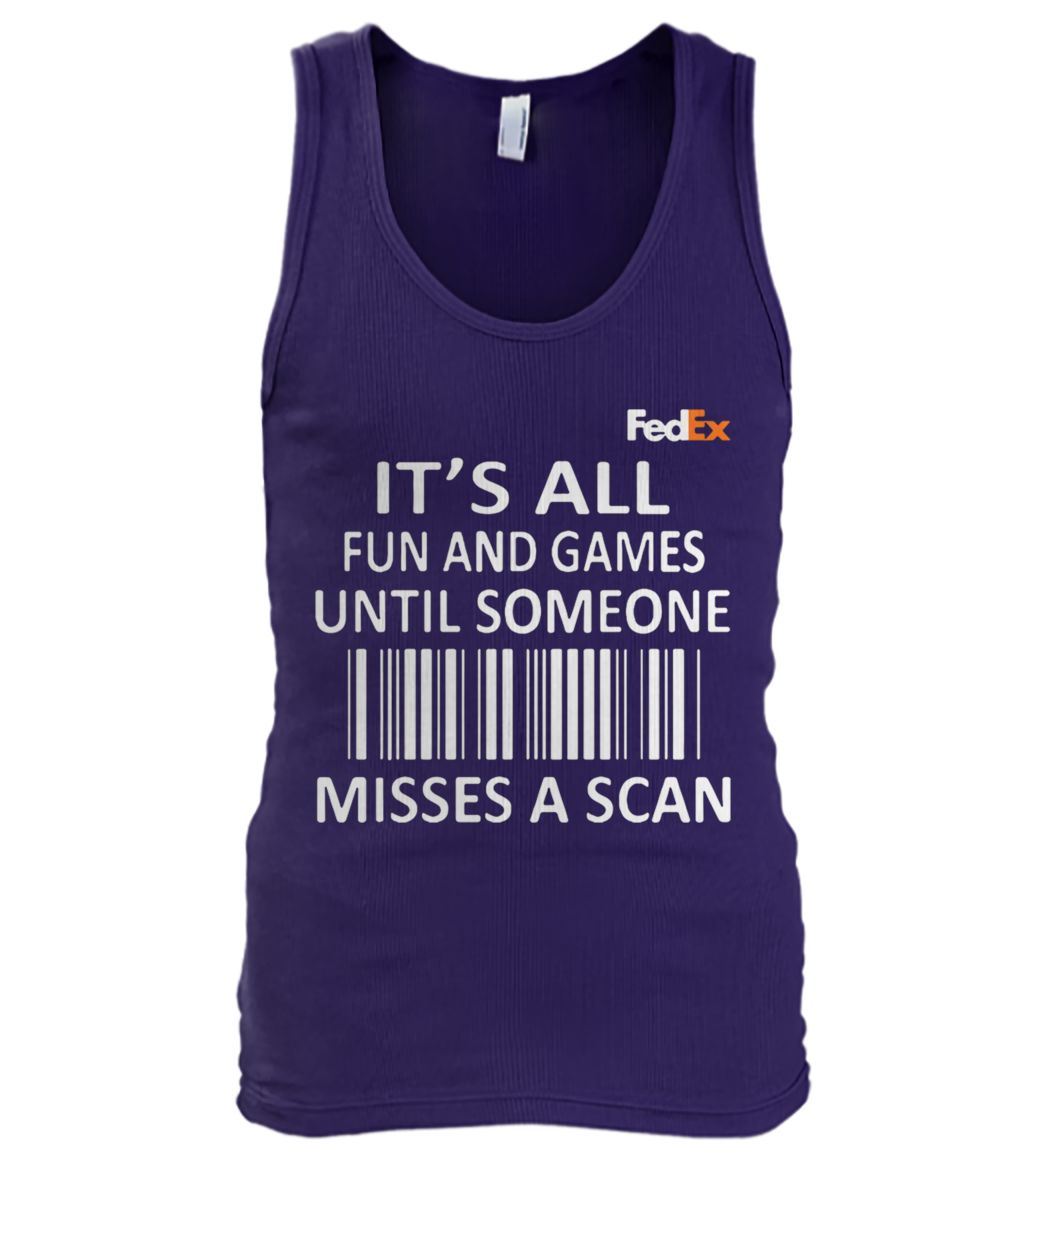 FedEx it's all fun and games until someone misses a scan tank top